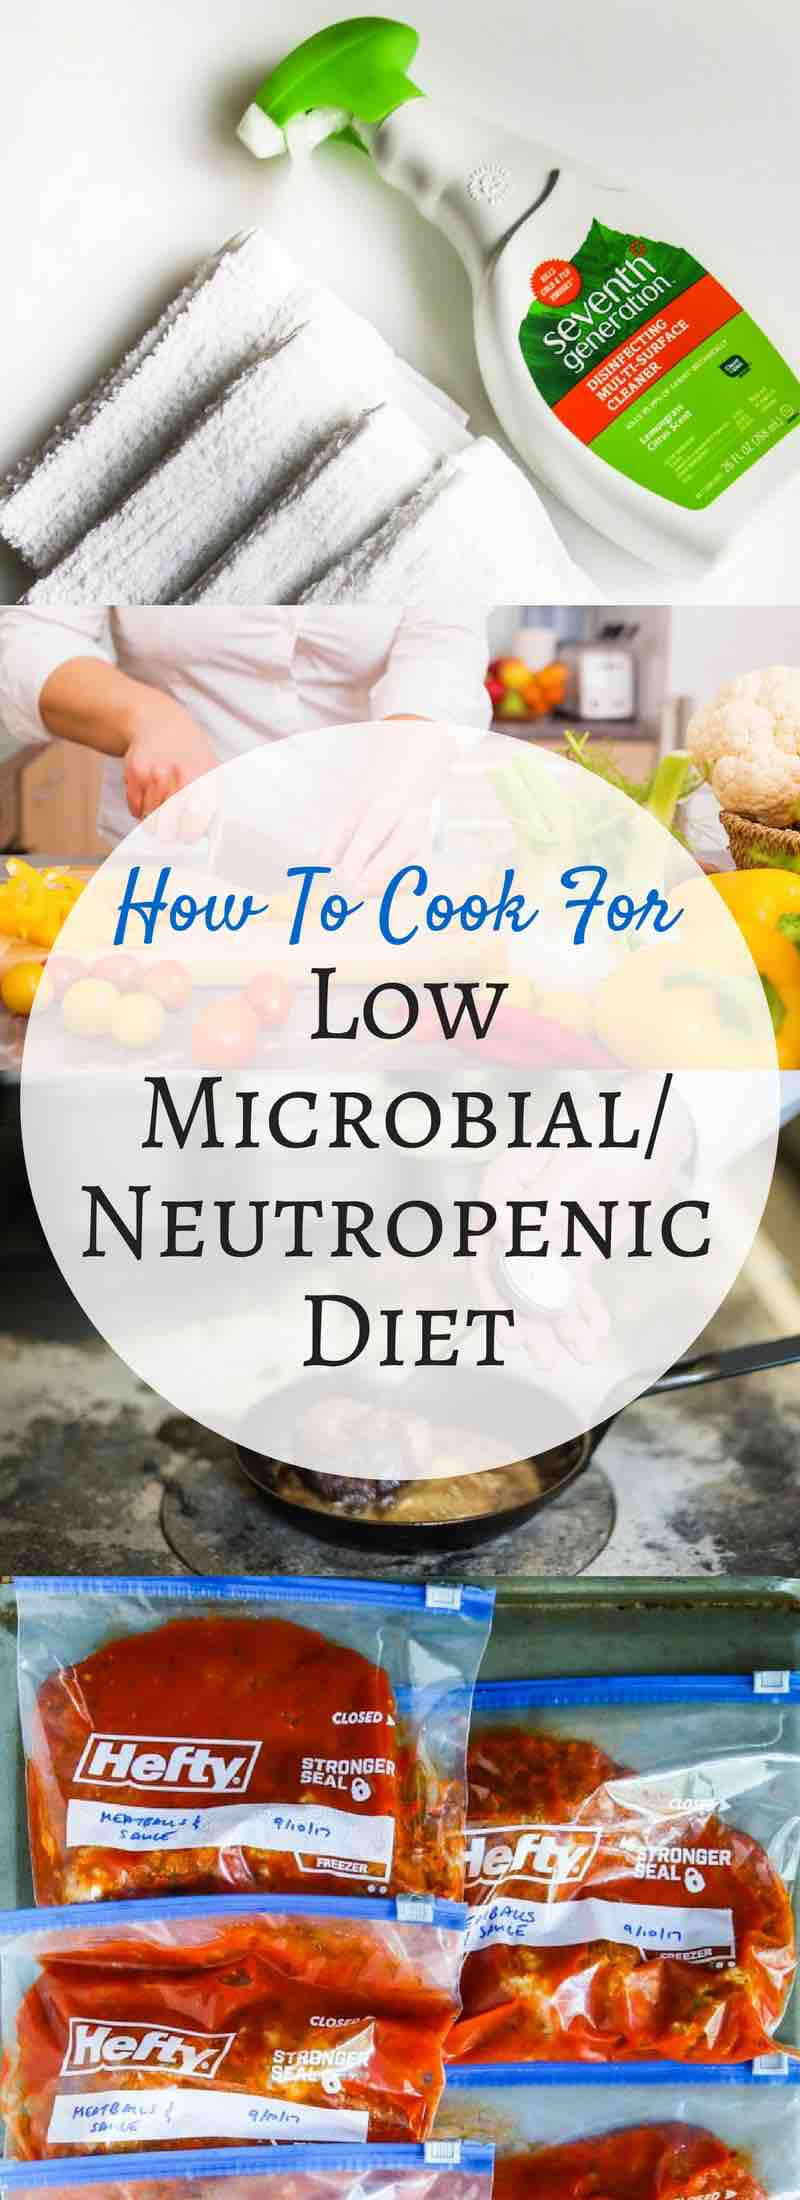 How To Cook for Microbial Neutropenic Diet - some cancer patients are on this special diet. Learn how to cook safely for these patients.